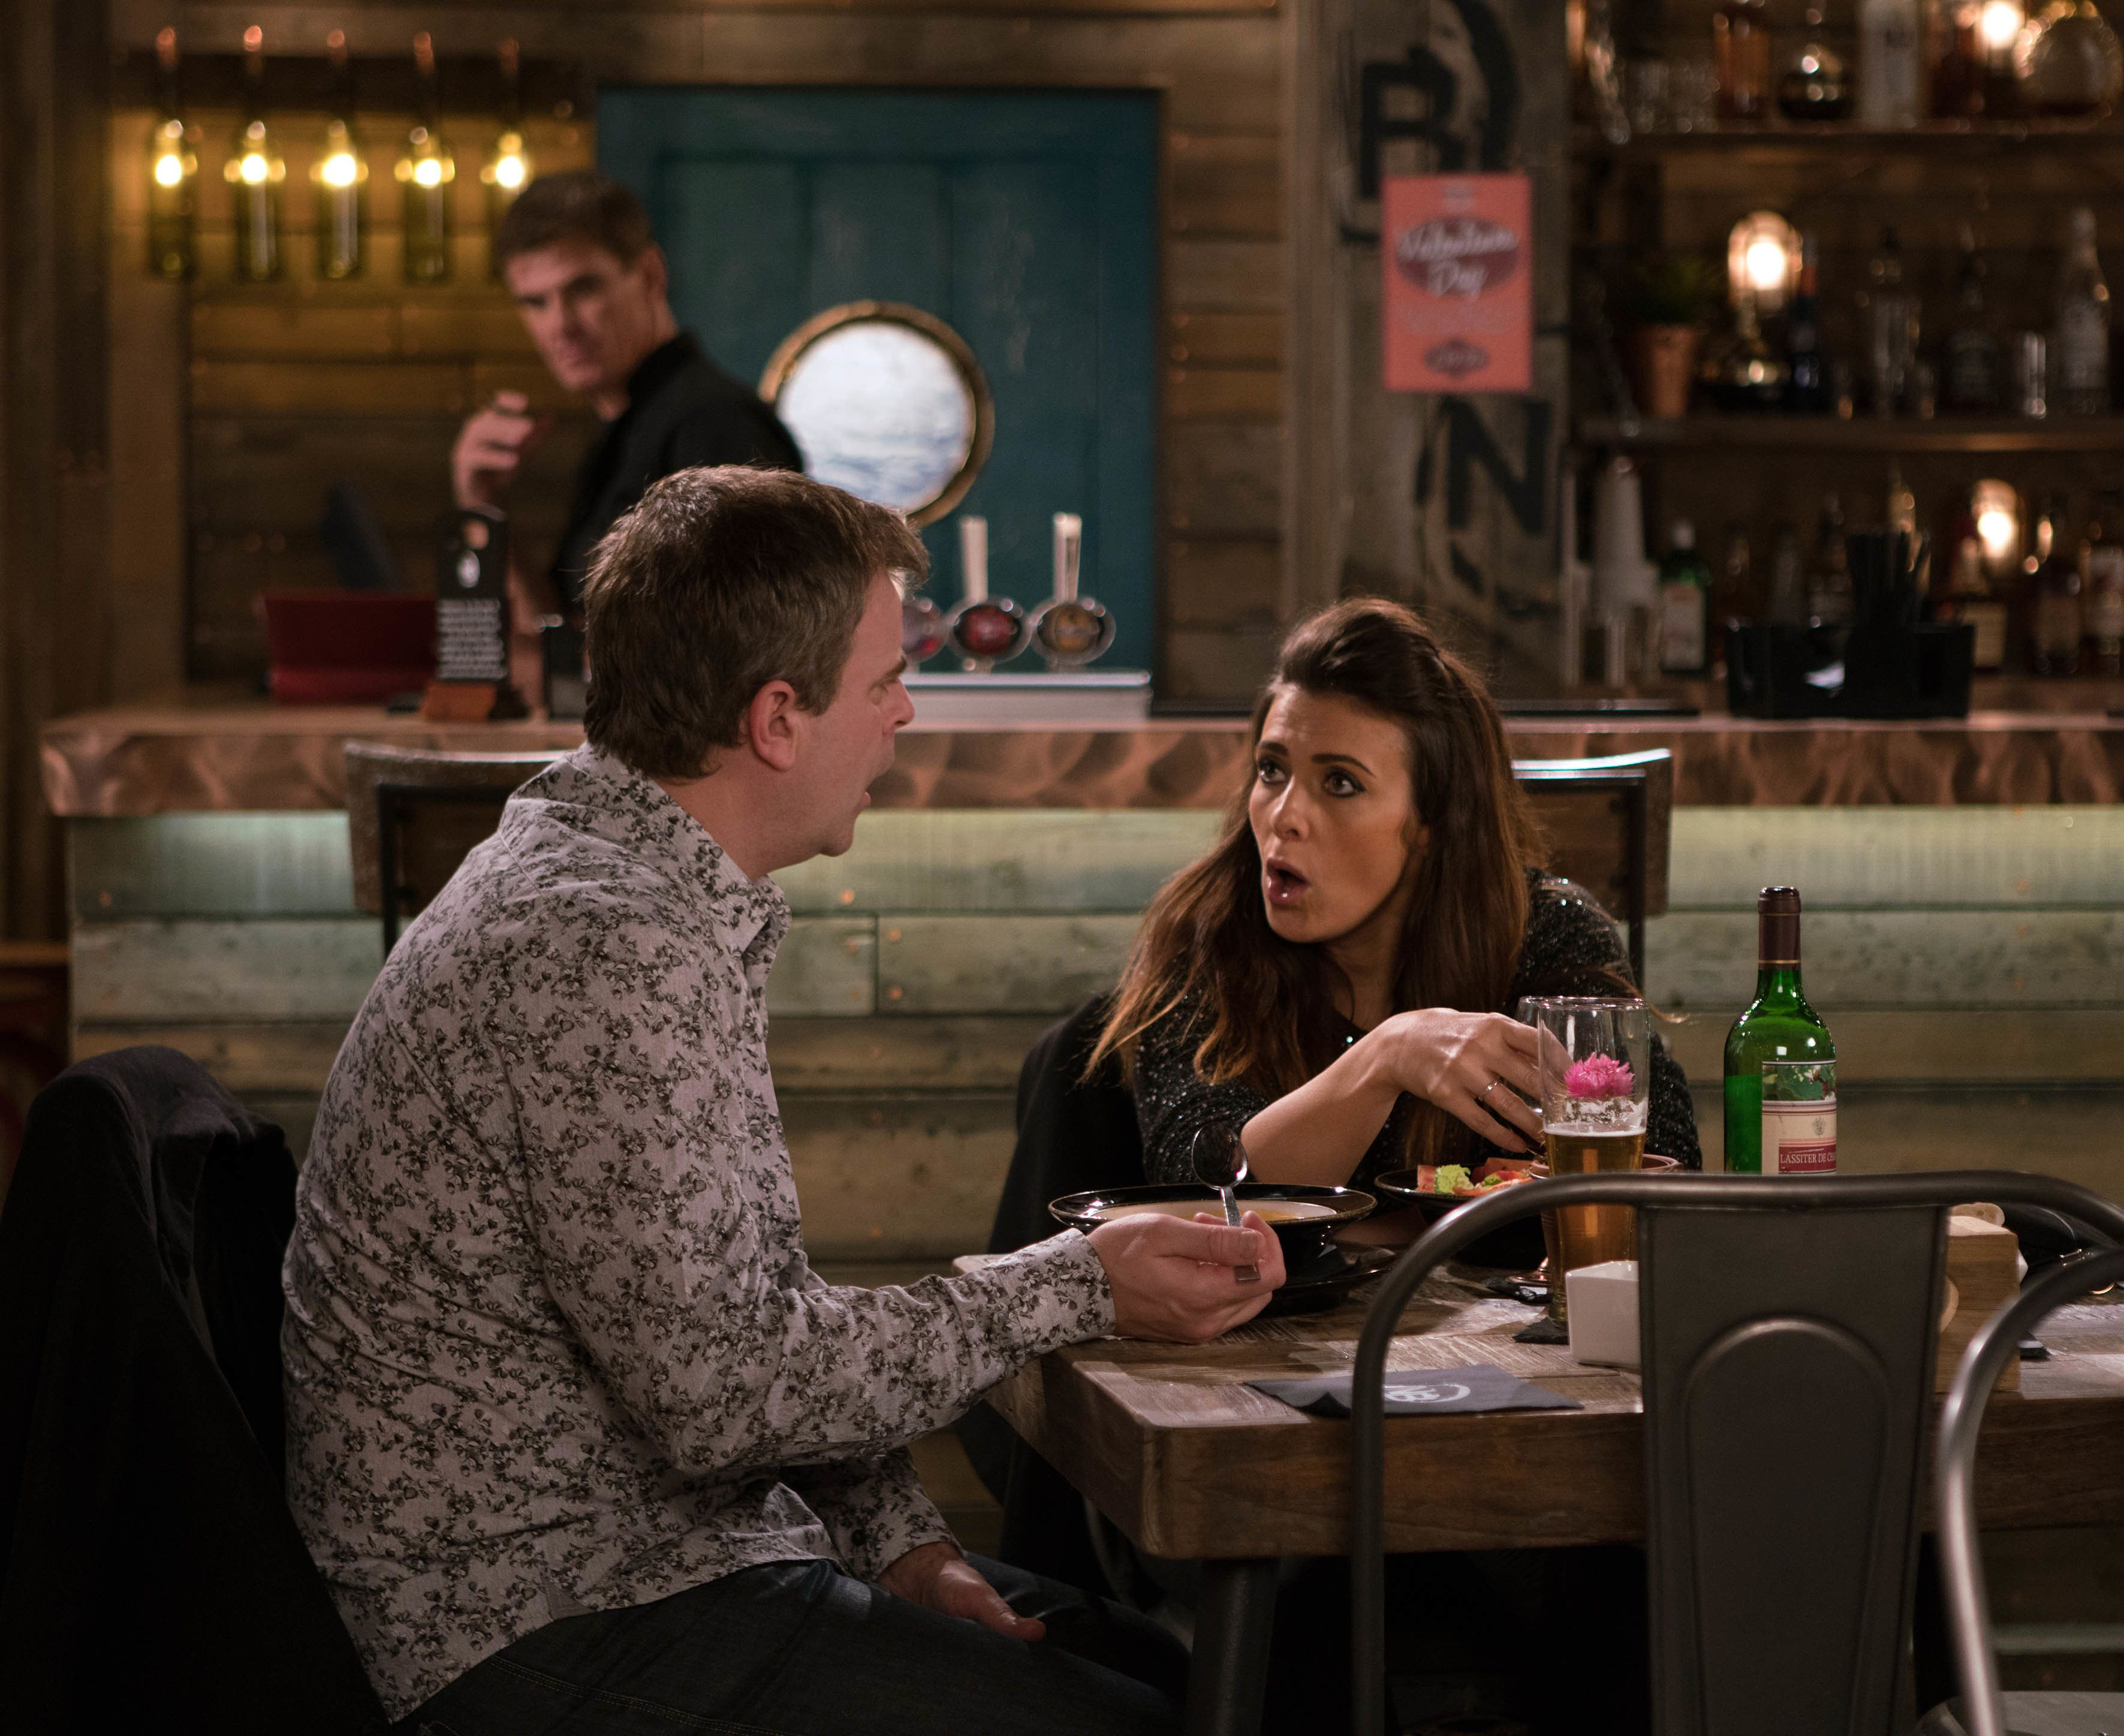 'Corrie' Spoiler Pictures Show Michelle And Steve Struggling To Support Each Other After